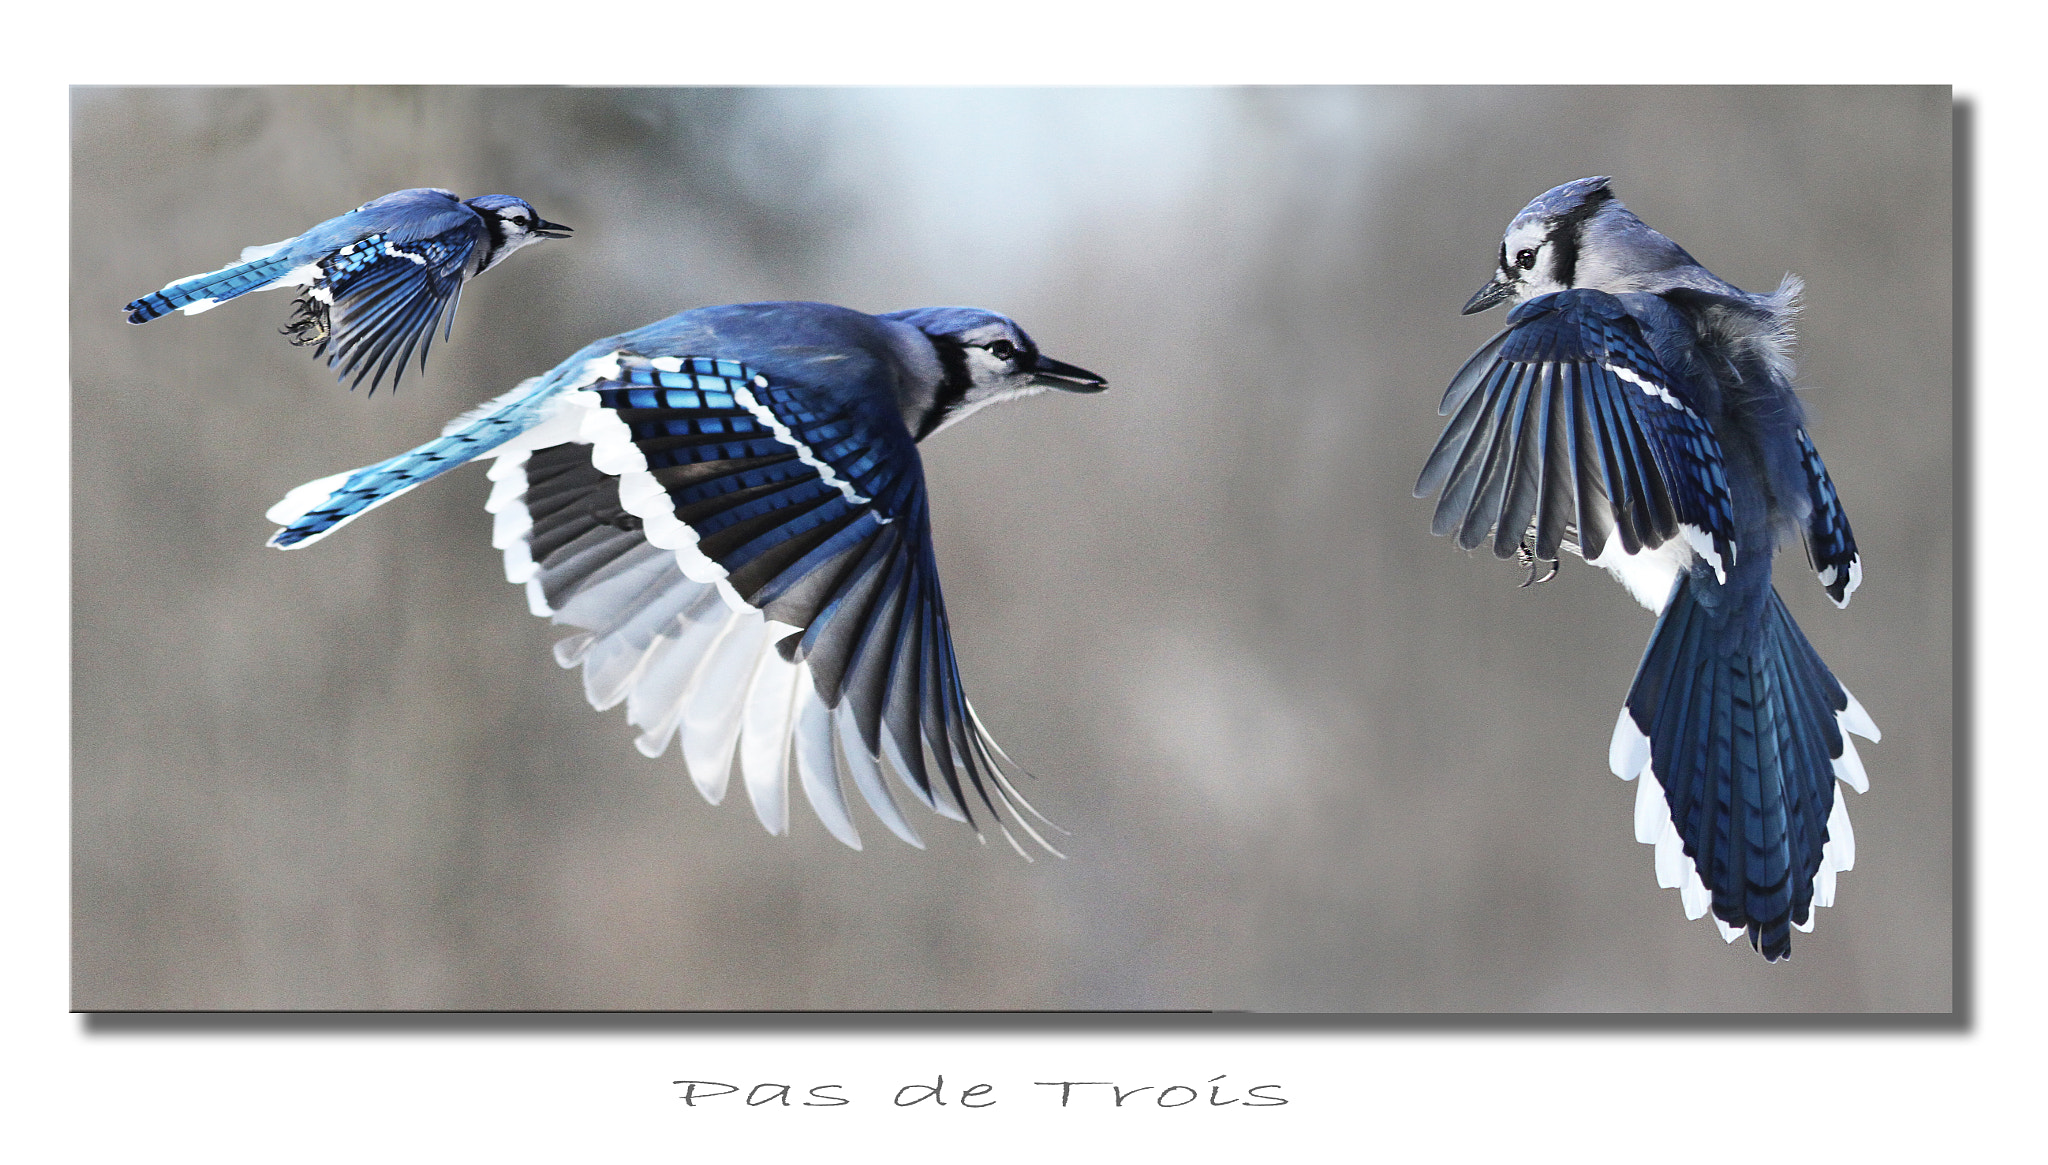 Photograph Pas de Trois by Heather Bashow on 500px